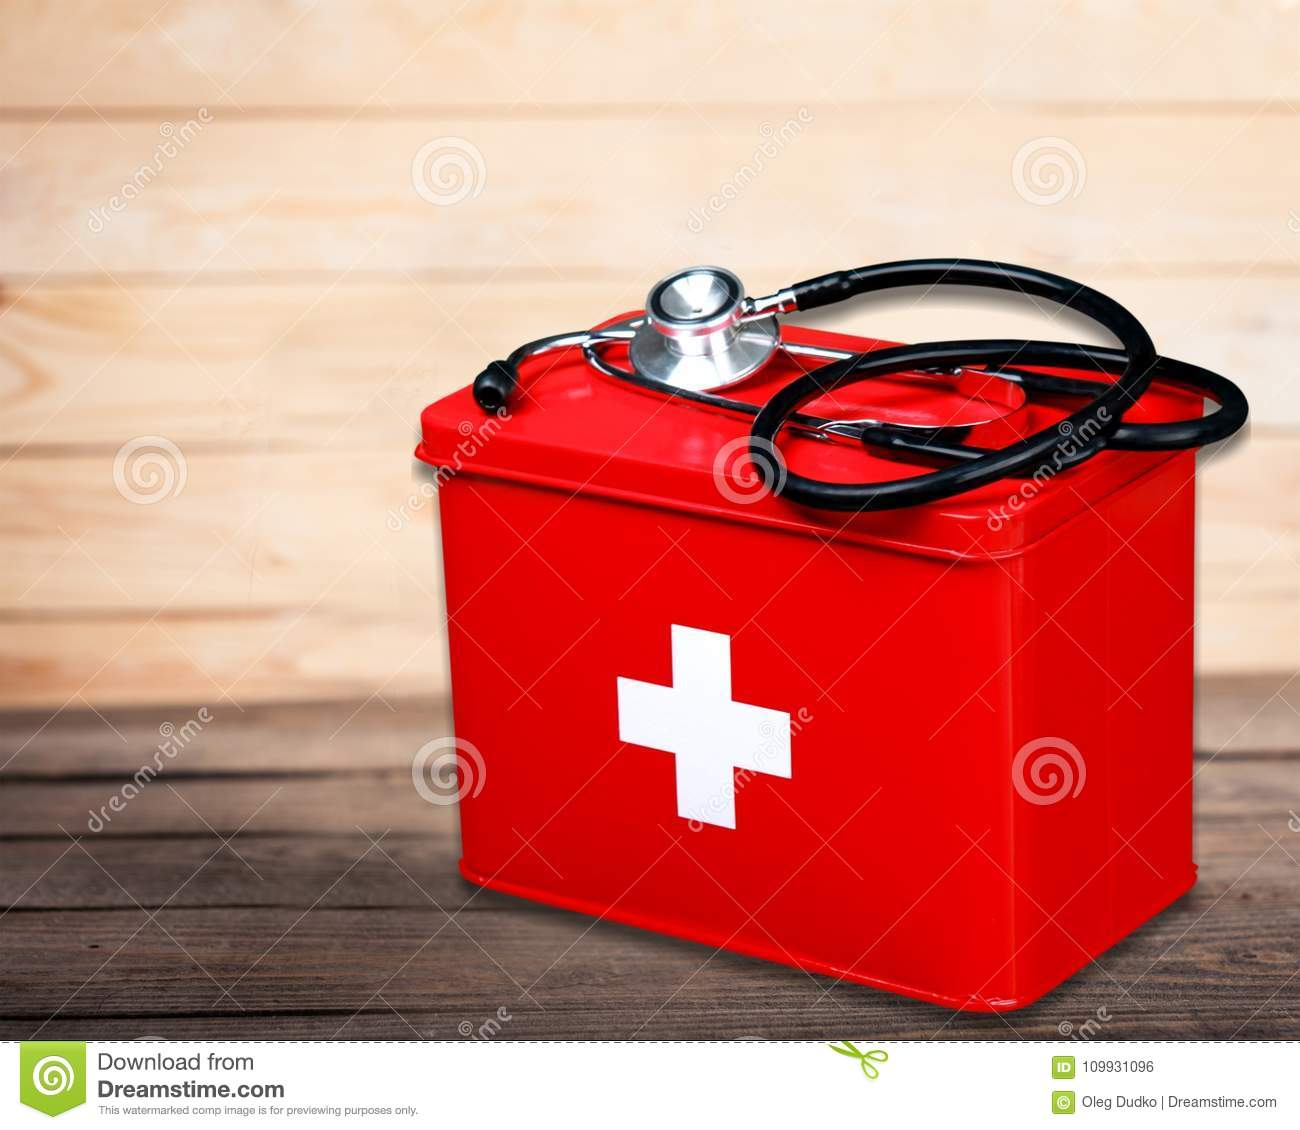 First Aid Kit With Medical Supplies On Wooden Stock Photo - Image of